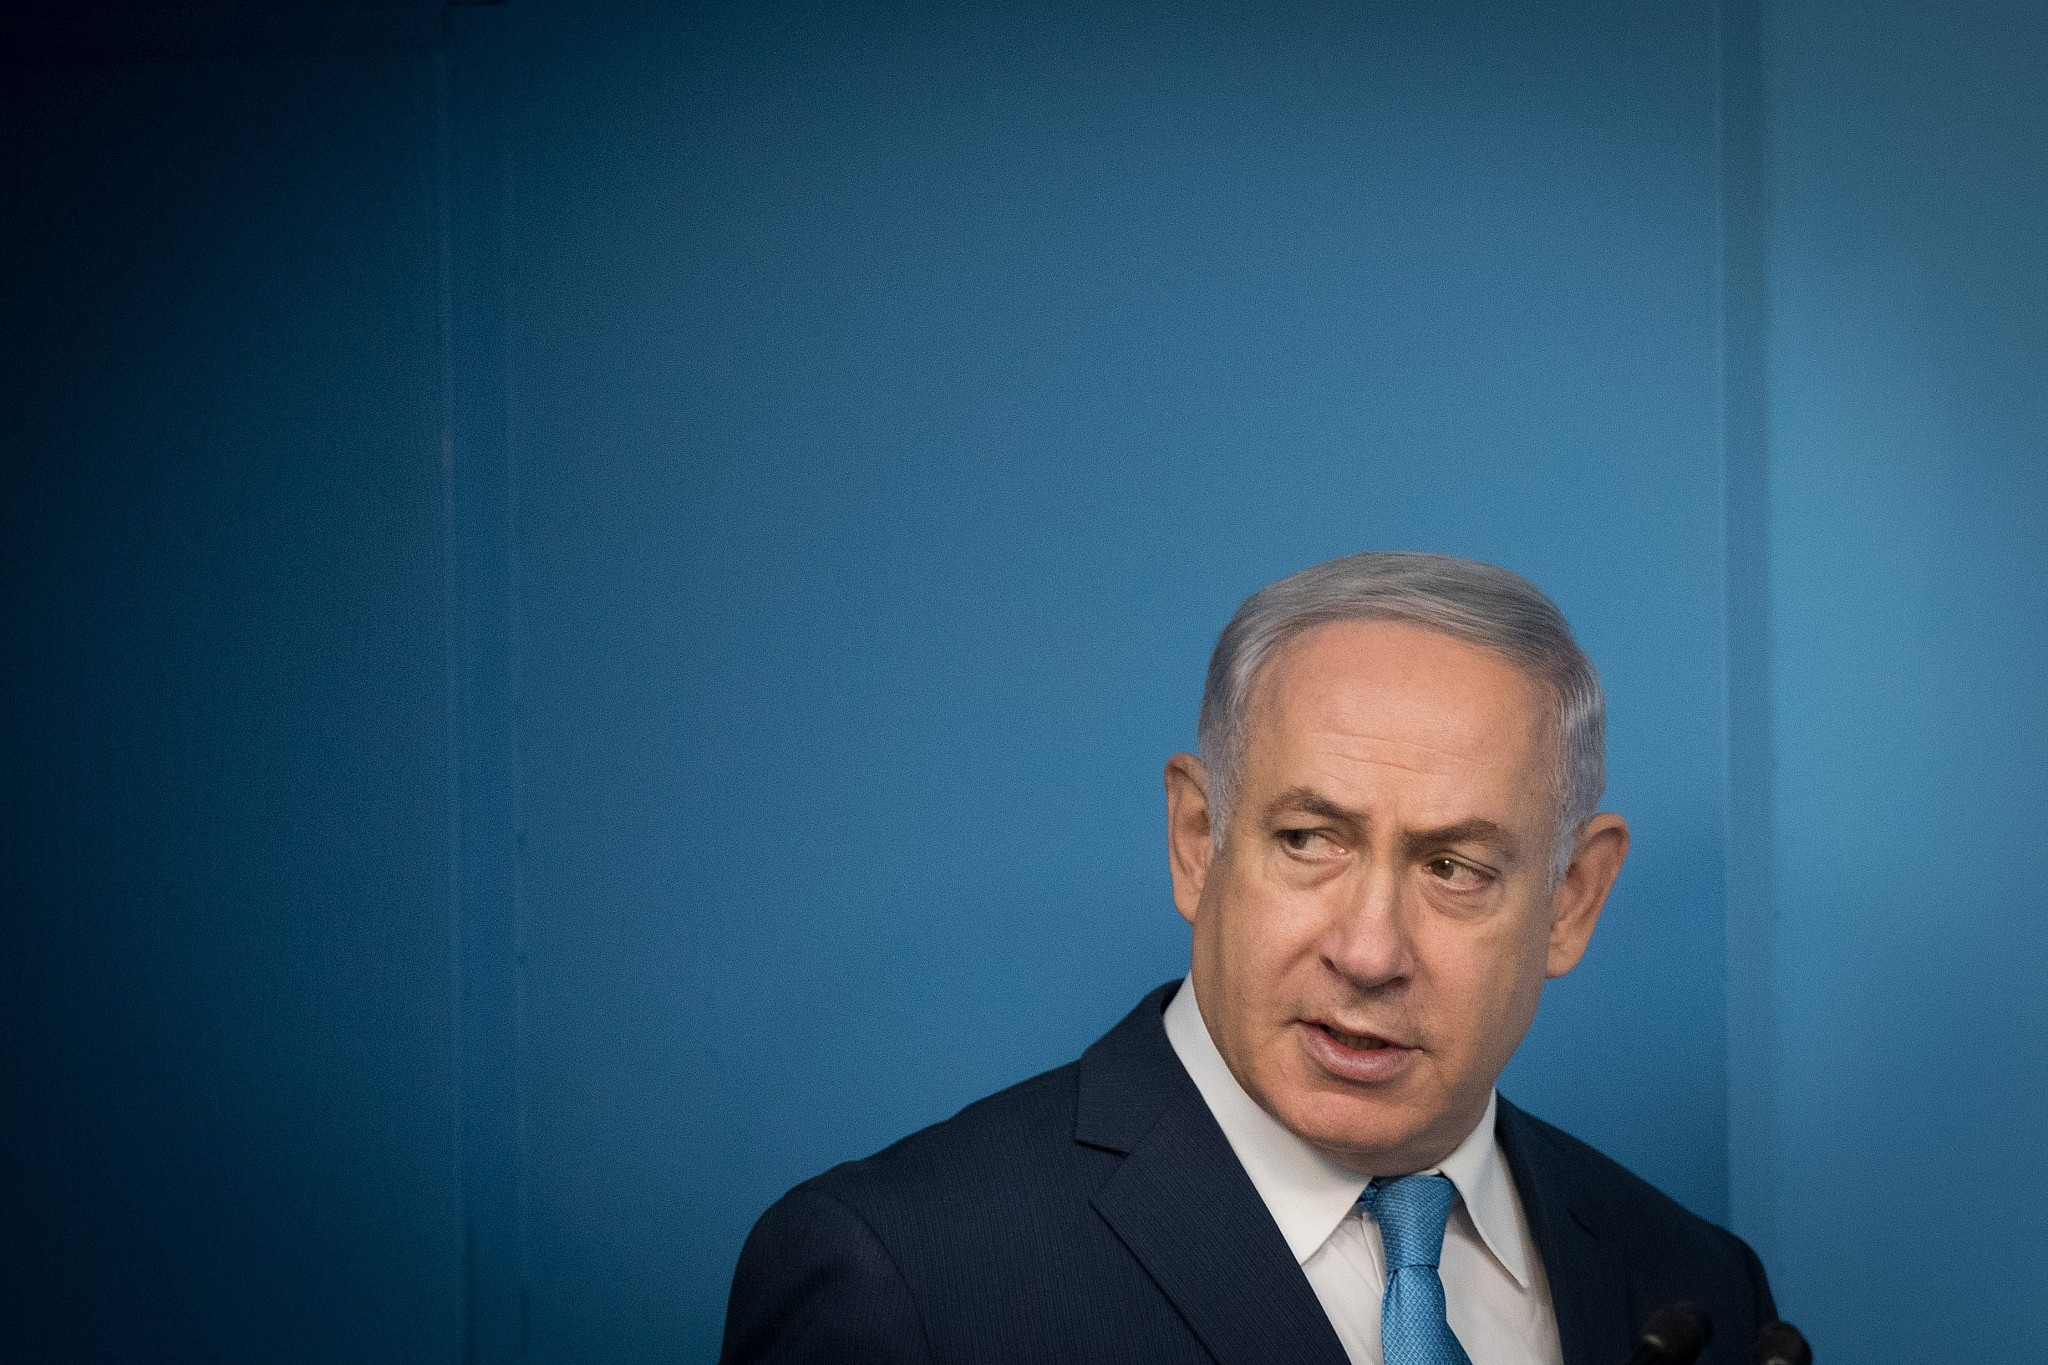 Netanyahu Turmoil Grows As New Allegations Surface